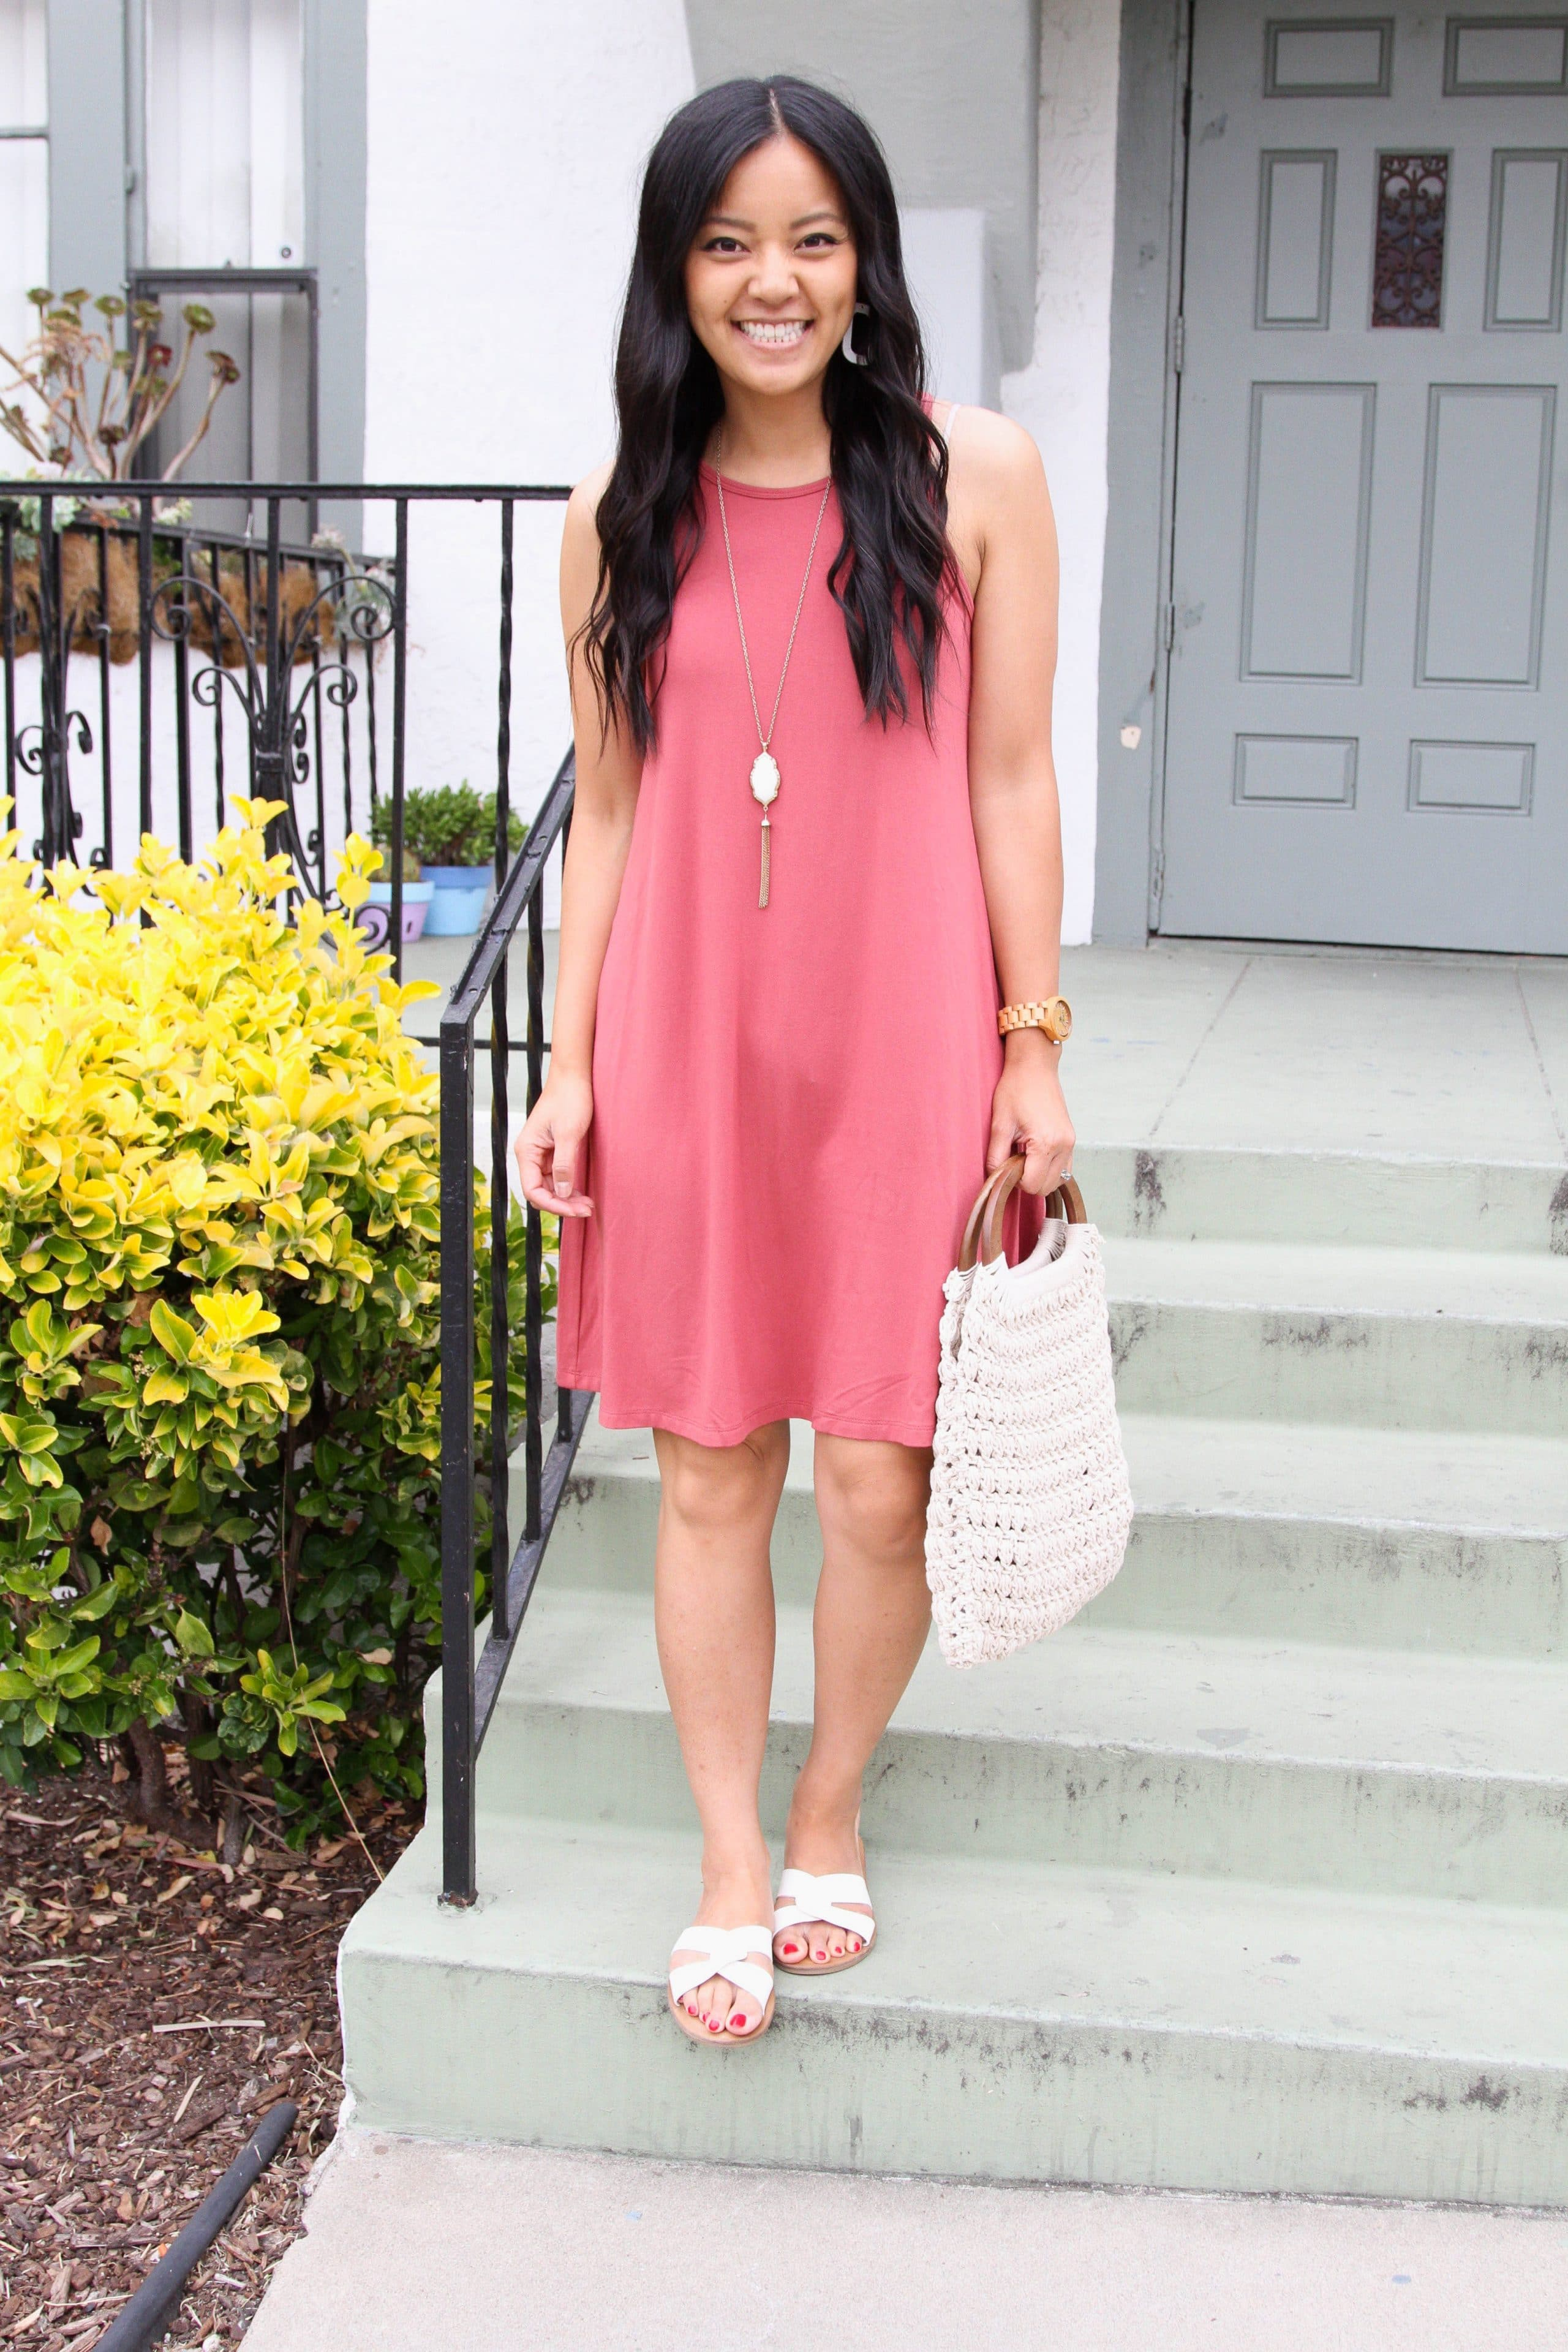 macrame handbag + white sandals + dusty pink swing dress + long pendant necklace